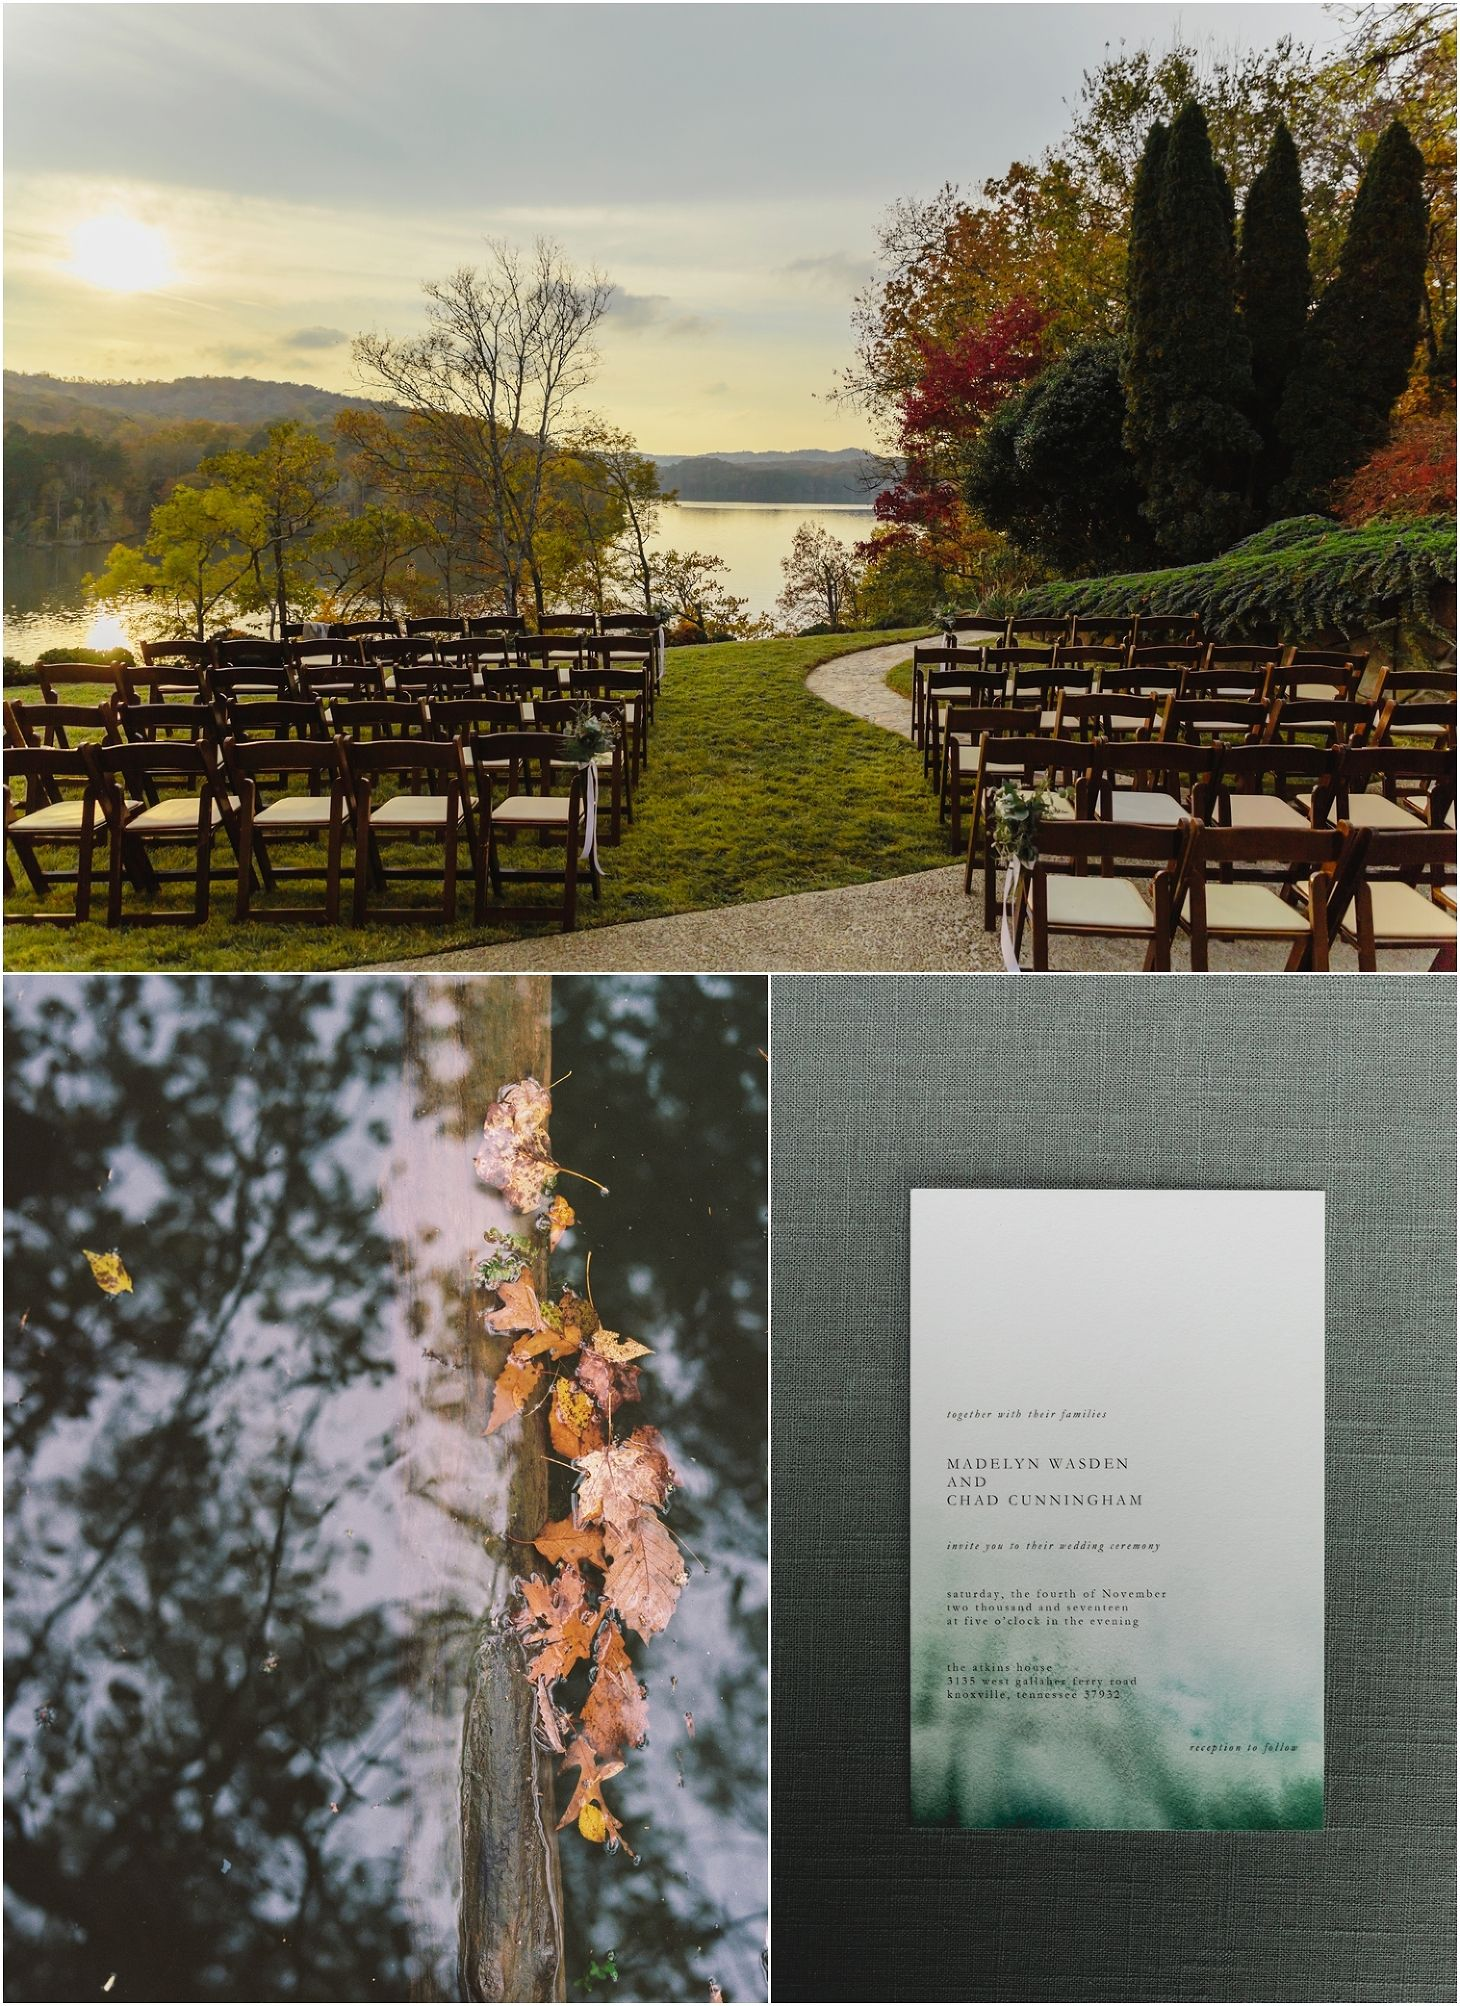 Ger Bend Knoxville Wedding Venue On The Lake East Tennessee Venues